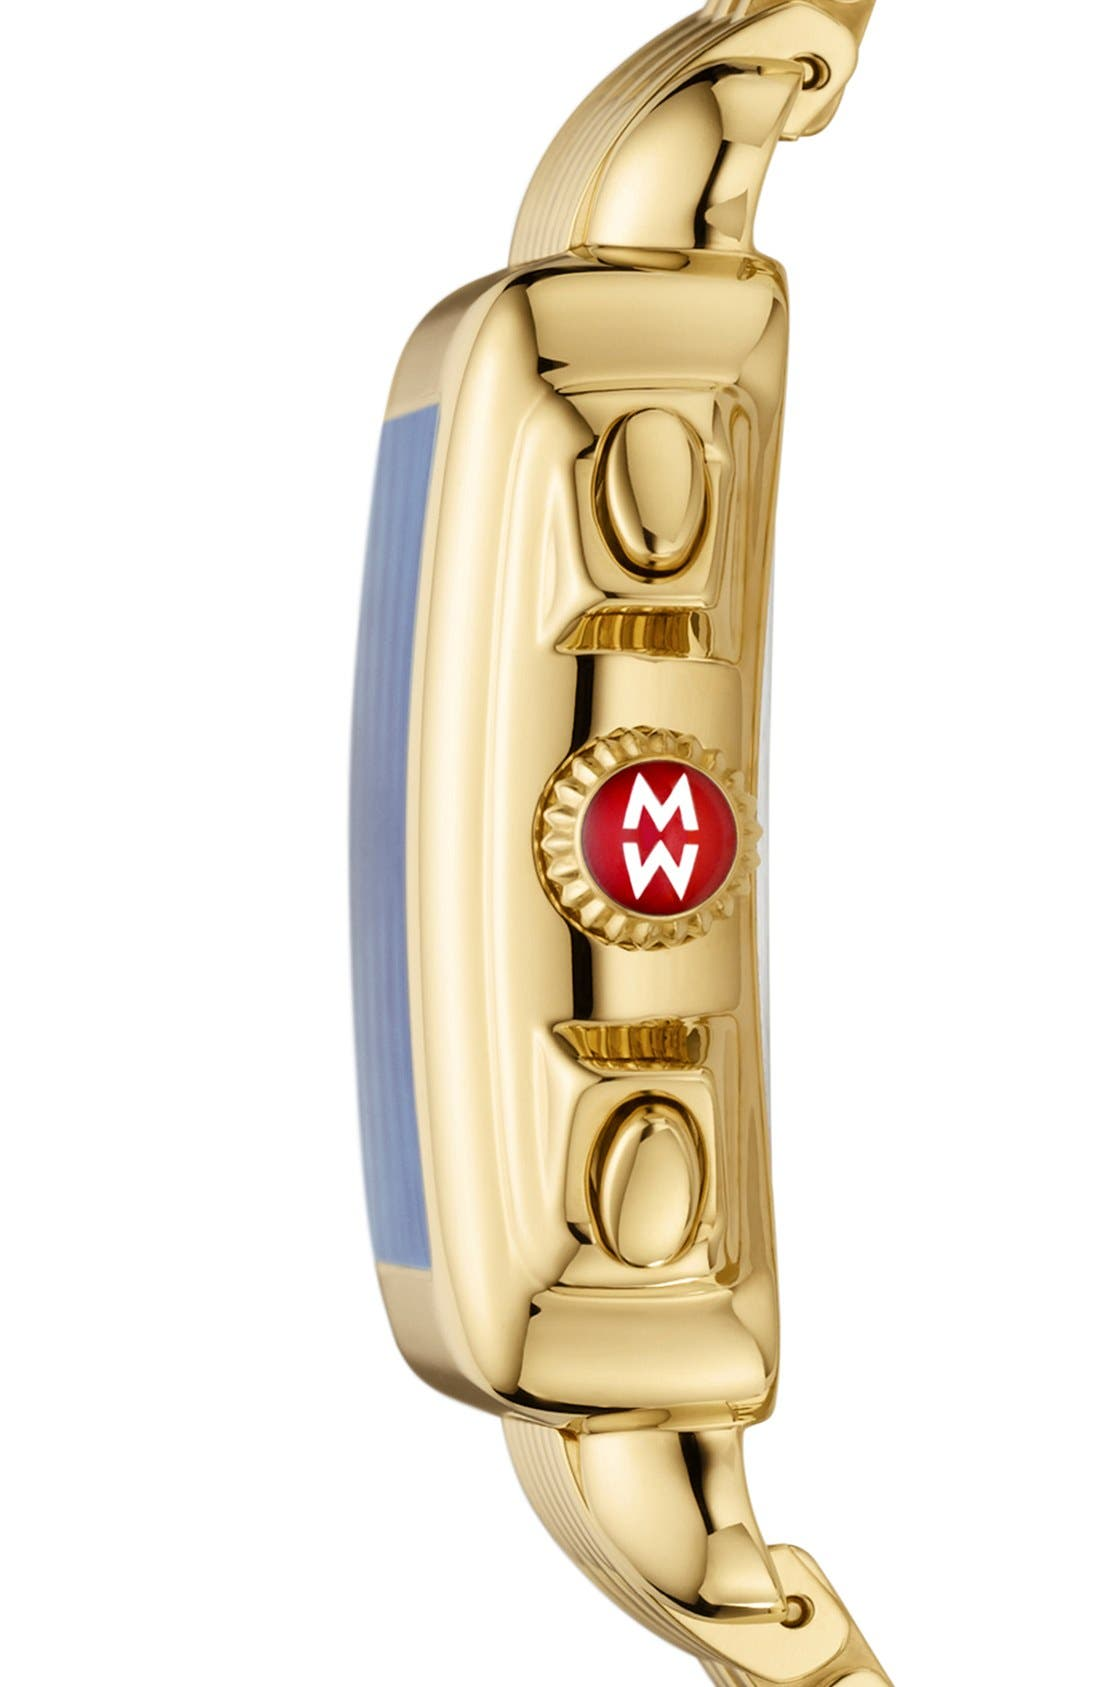 Deco Diamond Dial Gold Plated Watch Case, 33mm x 35mm,                             Alternate thumbnail 34, color,